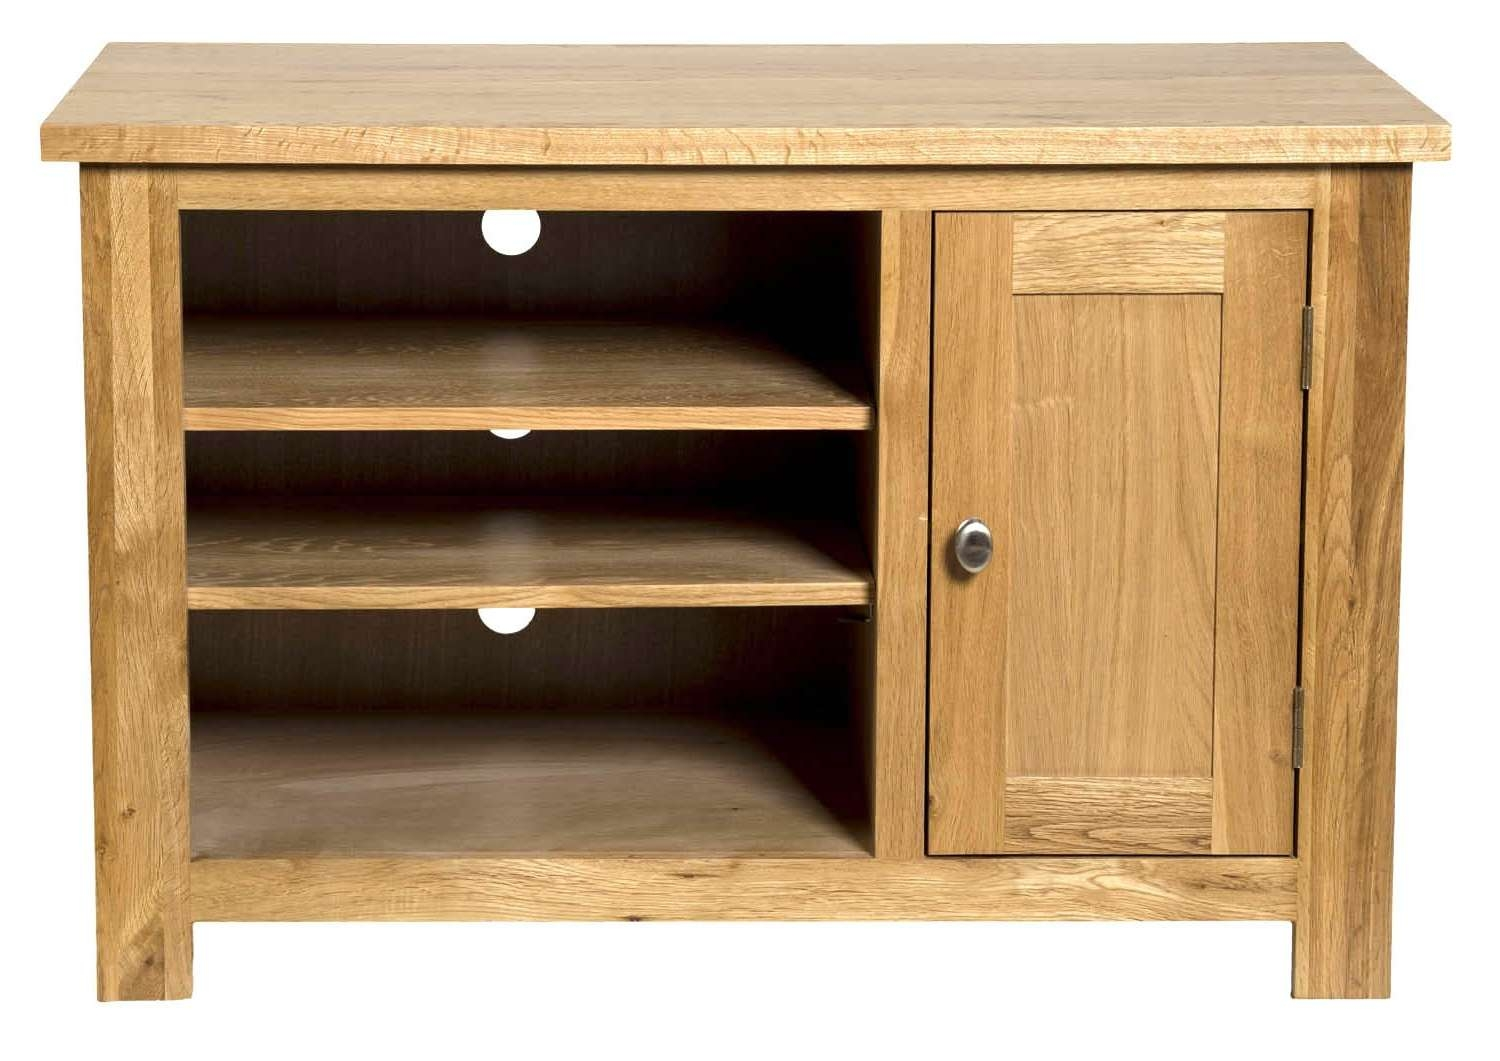 Waverly Oak Small Compact Tv Stand With Cabinet Storage | Hallowood For Small Tv Cabinets (View 14 of 20)